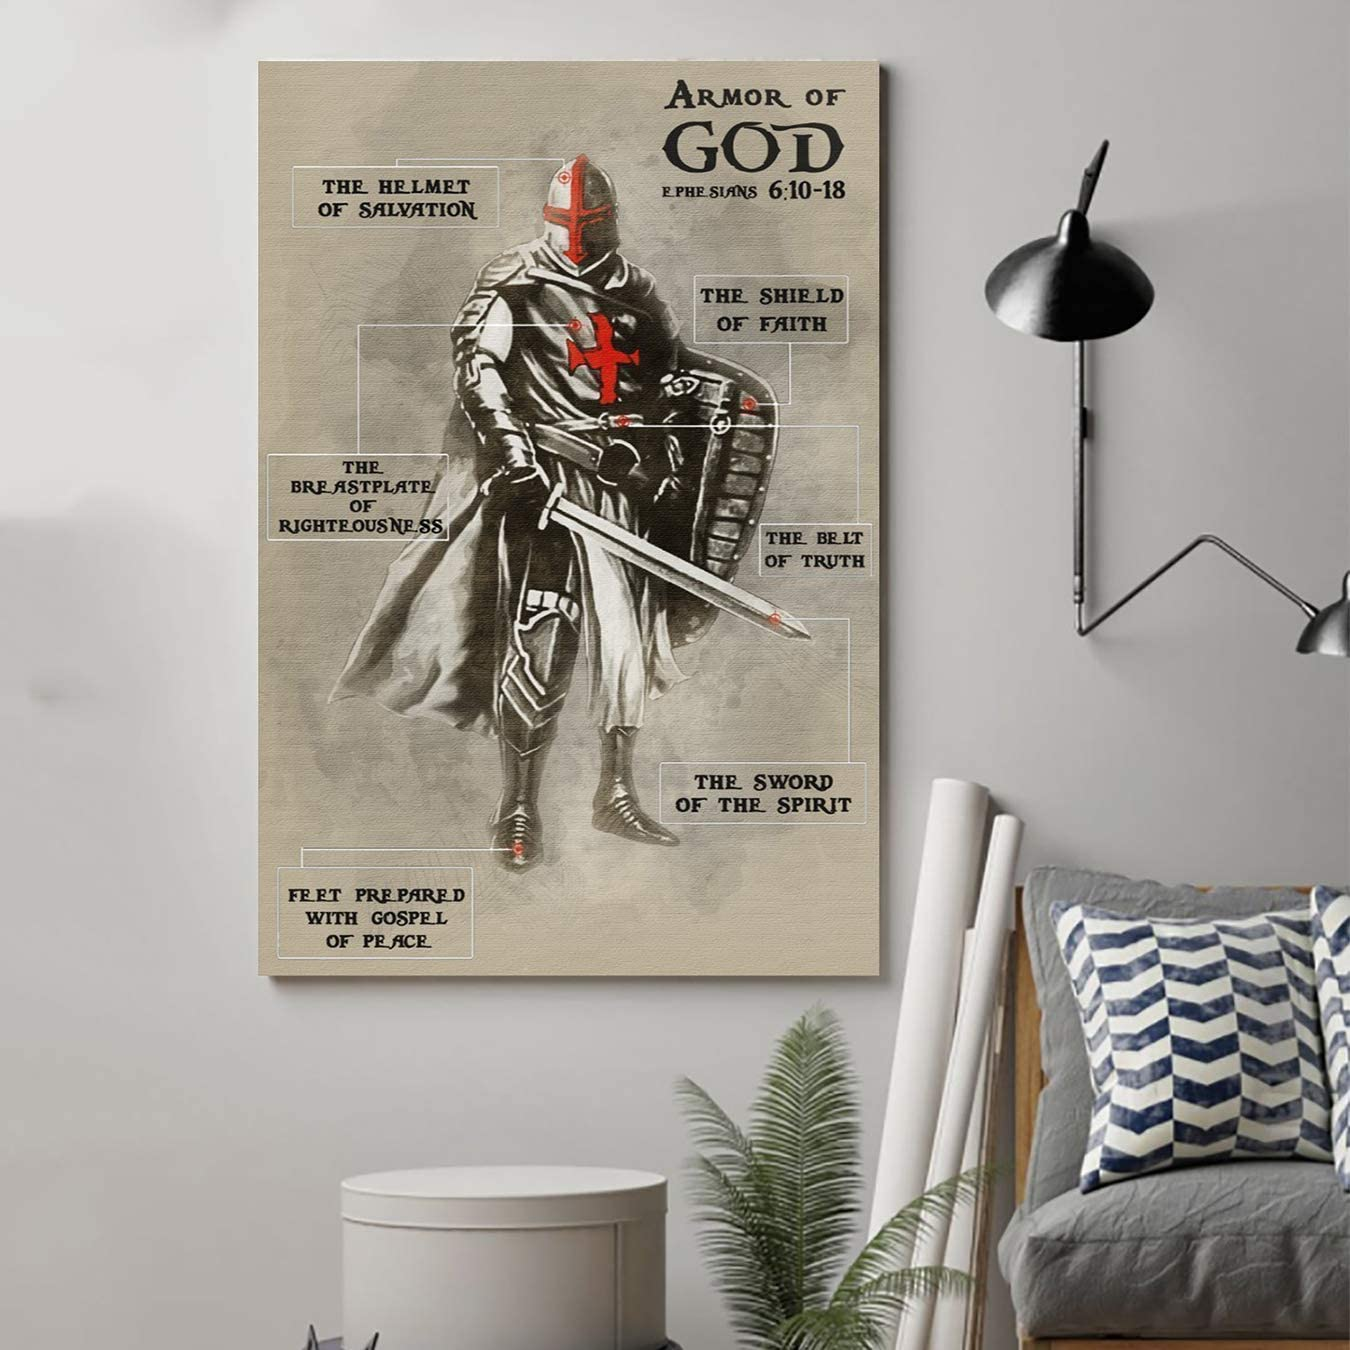 Knight Templar Poster - Armor of God-Command Strips Wall Decor - Poster for Room Aesthetic - Pictures Wall Vintage (Vintage Antique, Large 24x36)